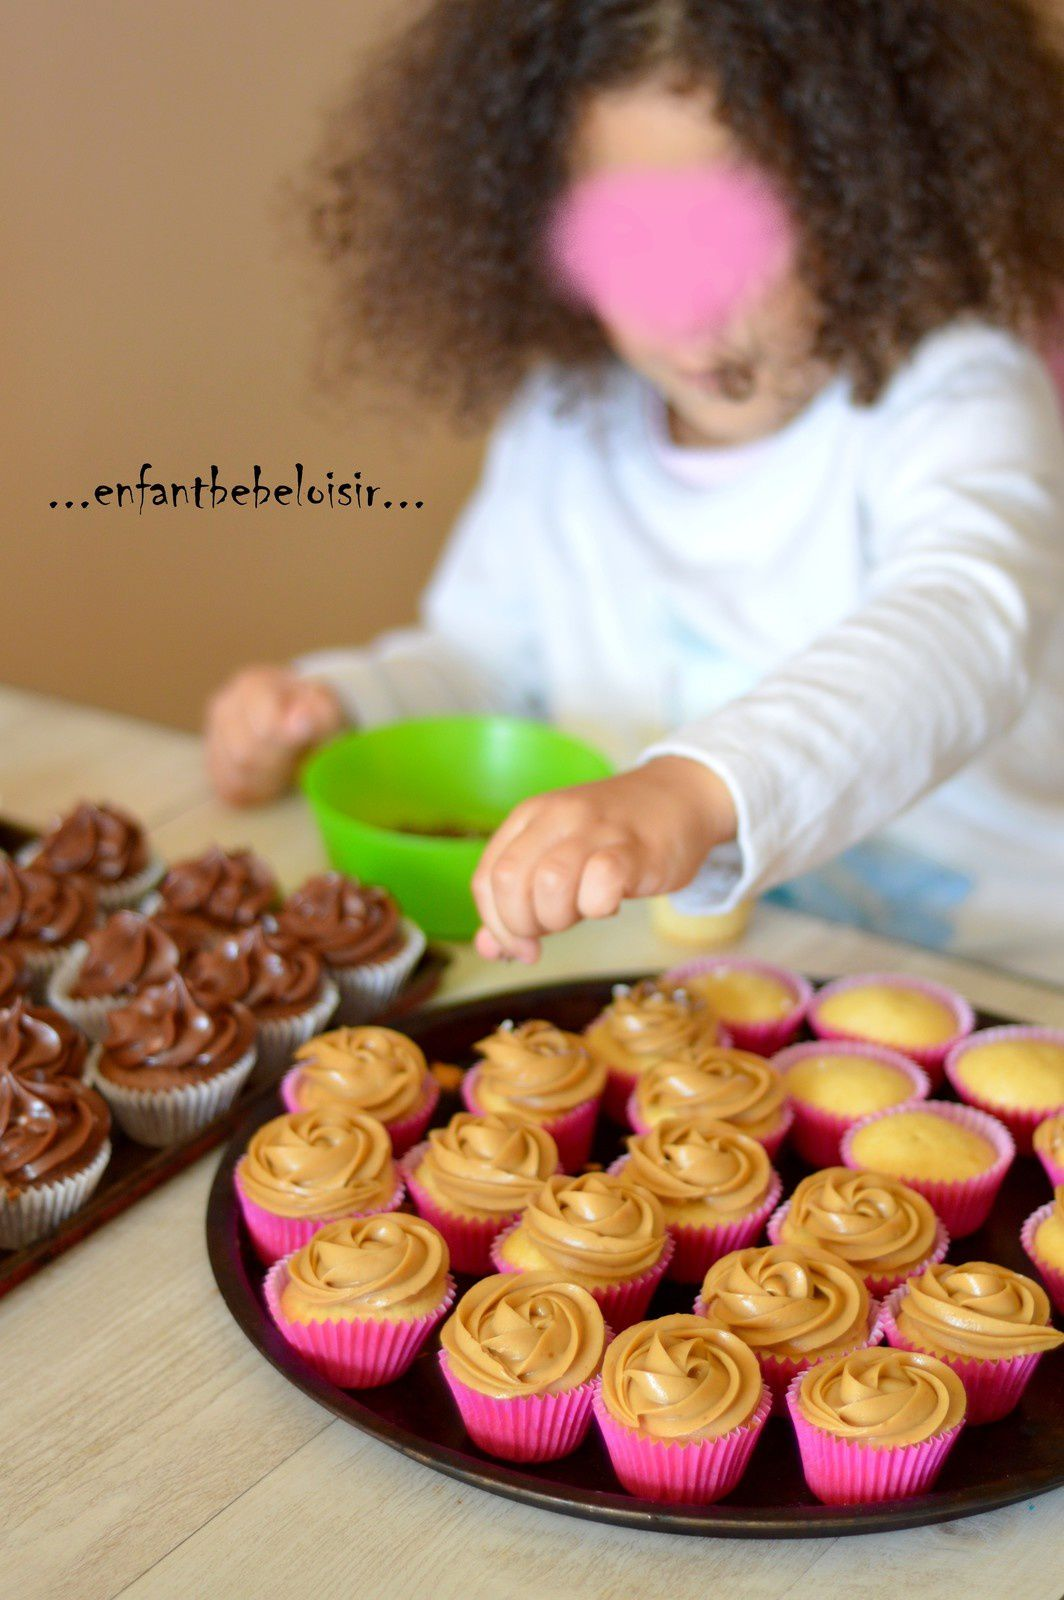 Atelier Cup cake Nut Speculoos en images